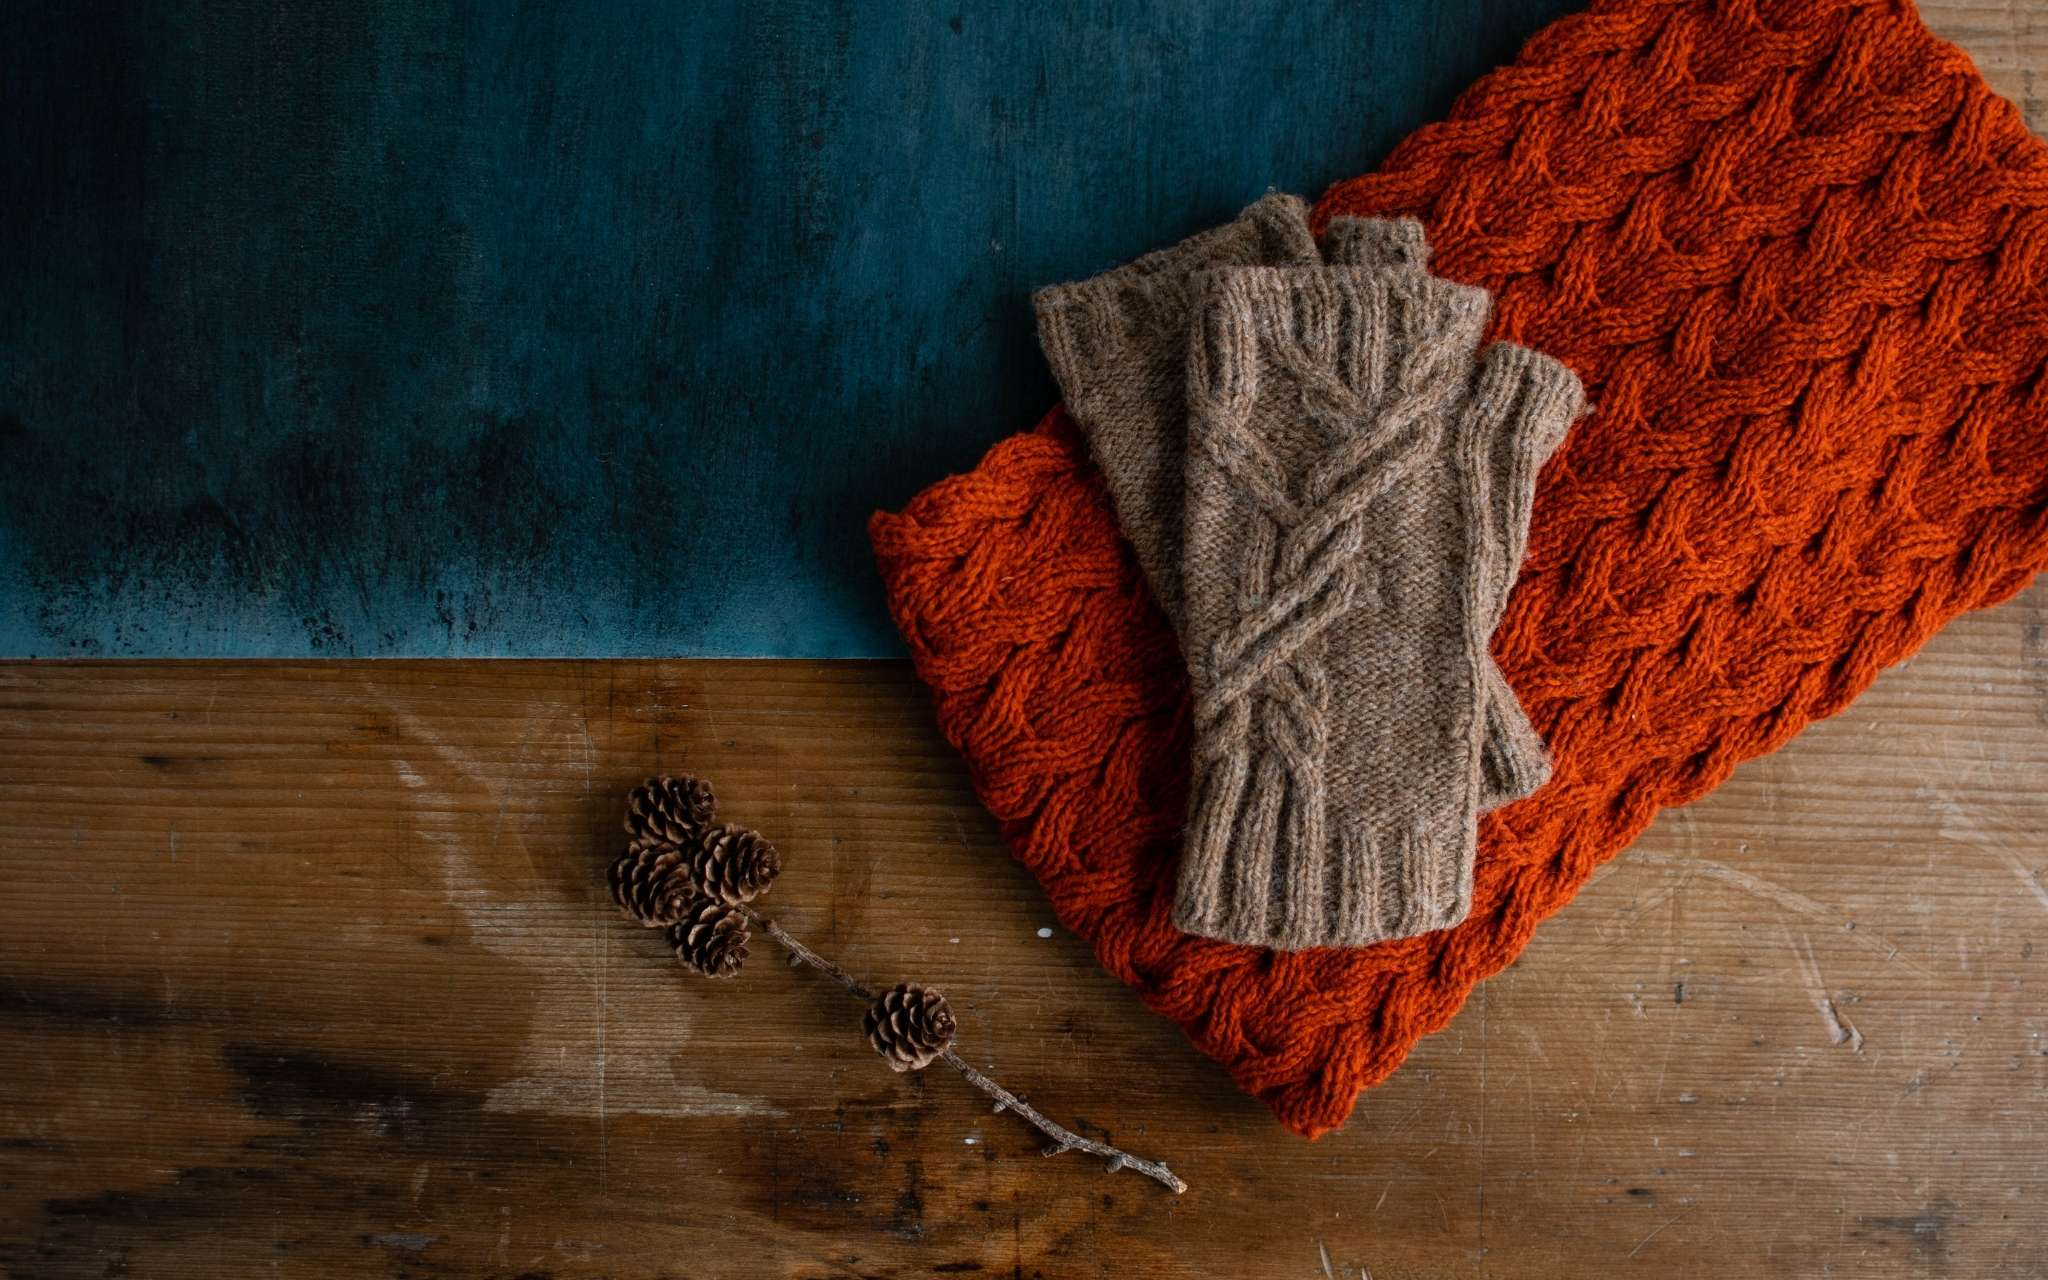 A pair of camel coloured fingerless mitts with a cable pattern lie flat on top of an orange cabled piece of fabric. They lie on a wooden surface.